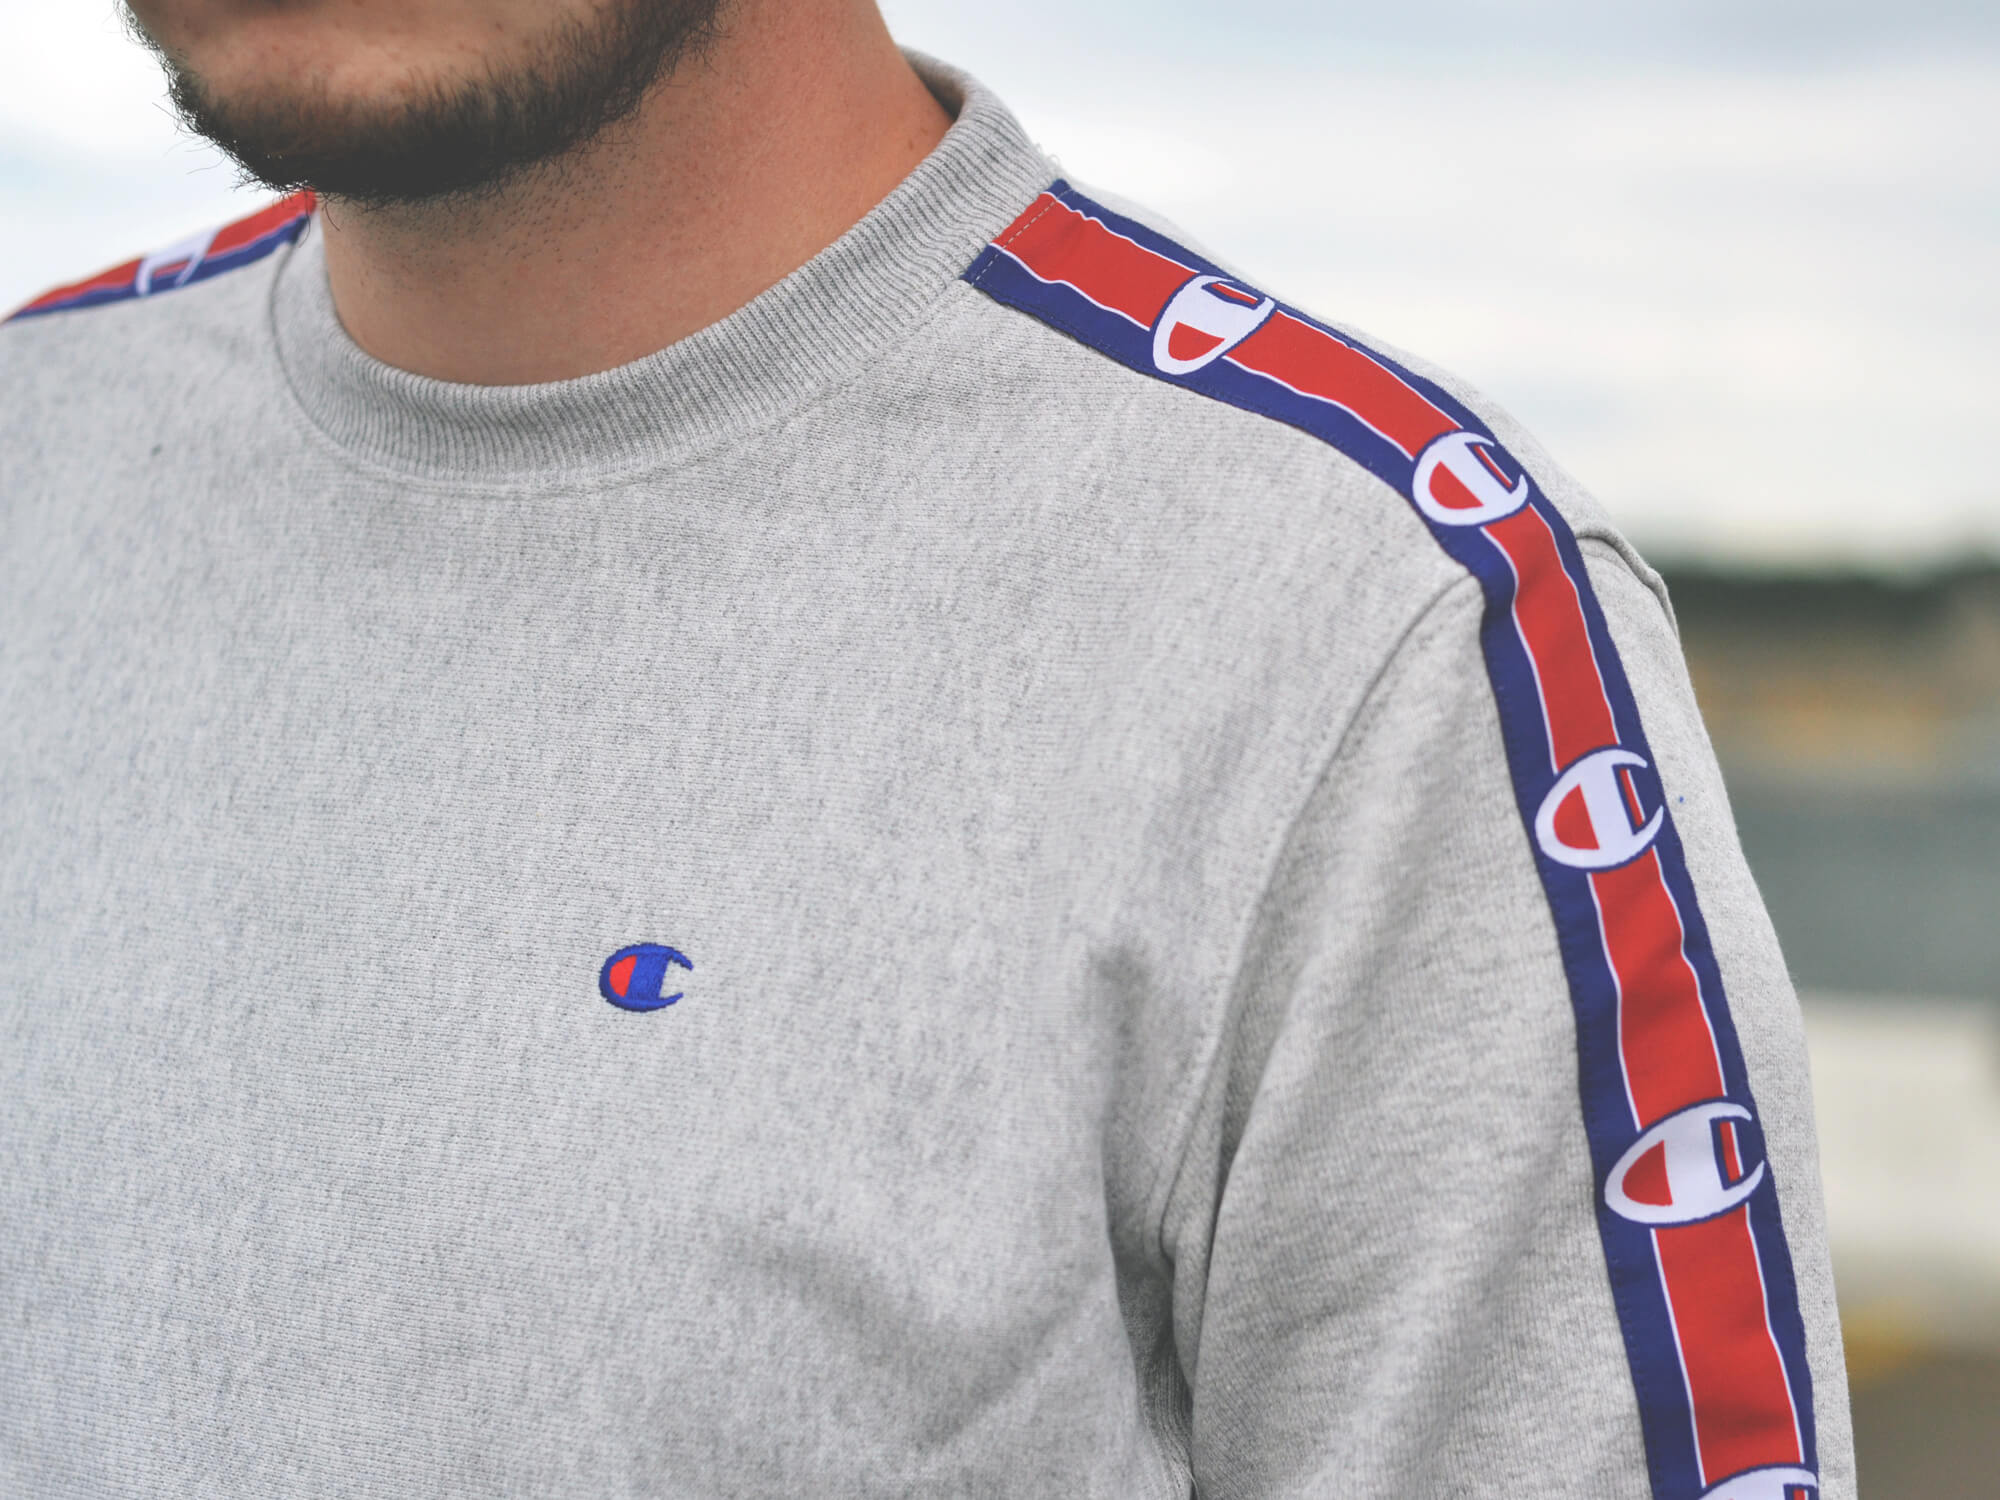 champion-lookbook-7 copy